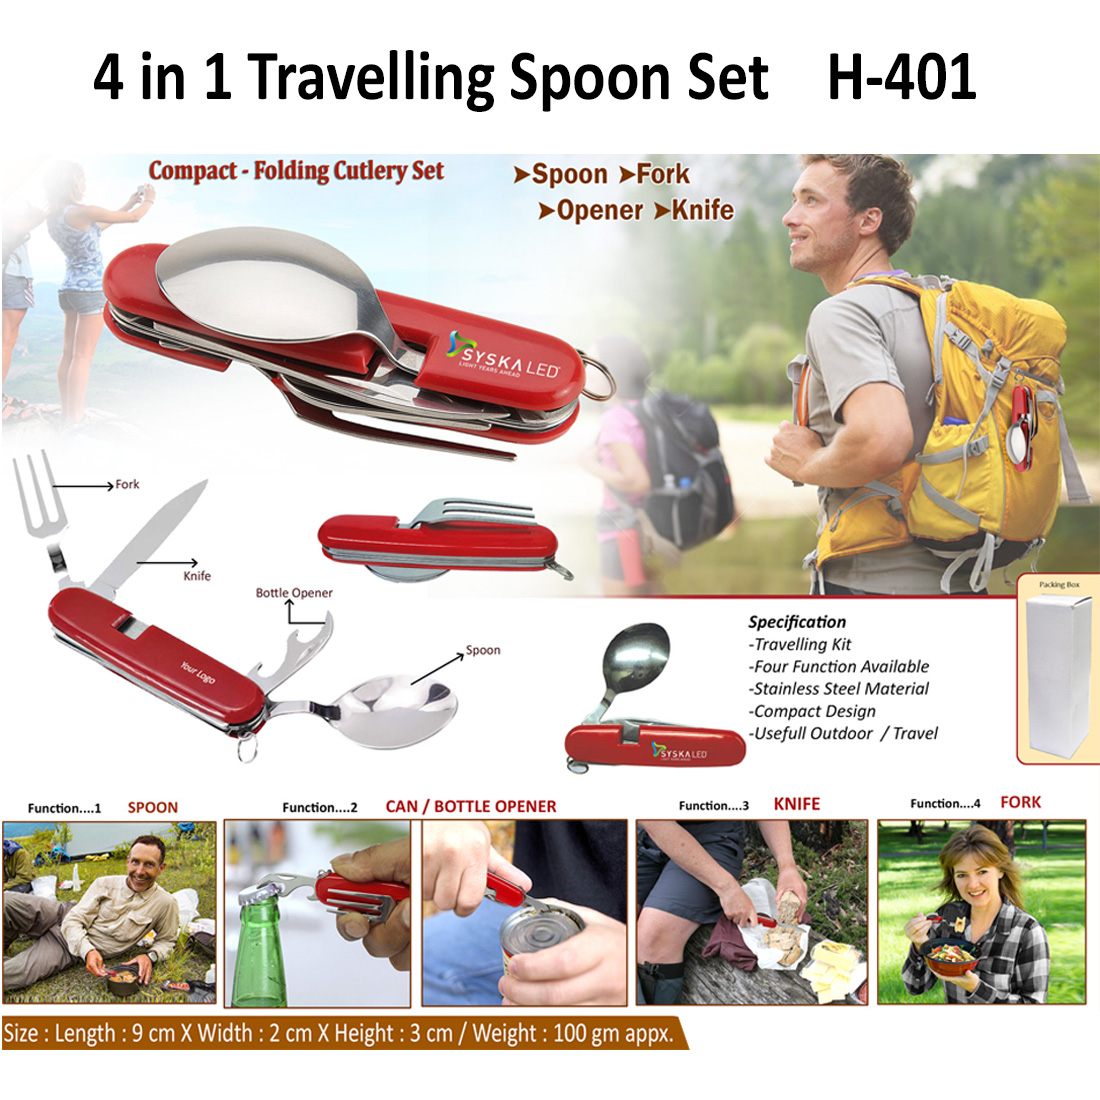 4 in 1 Travelling Spoon Set H-401